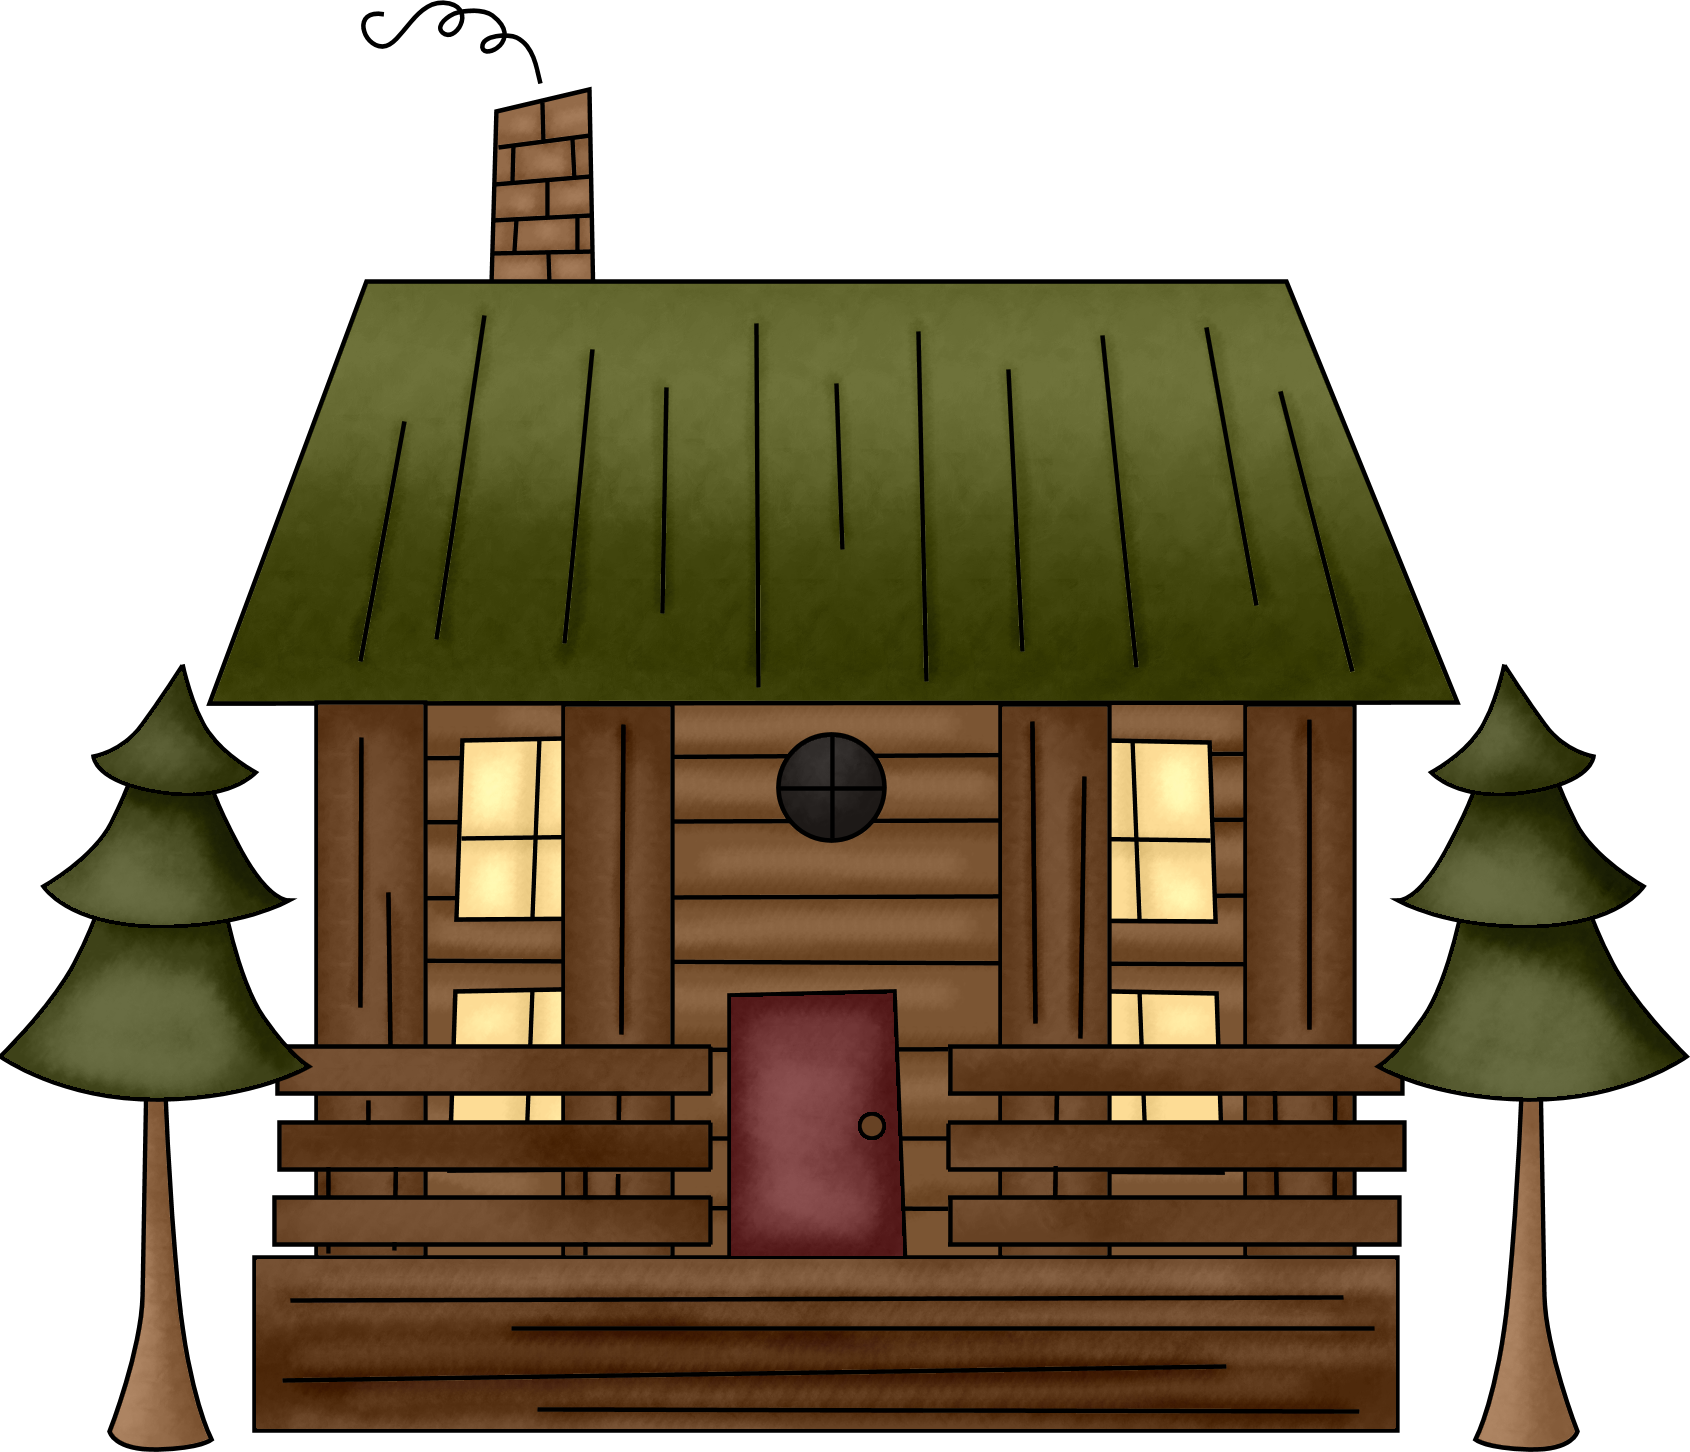 Wood cabin clipart.